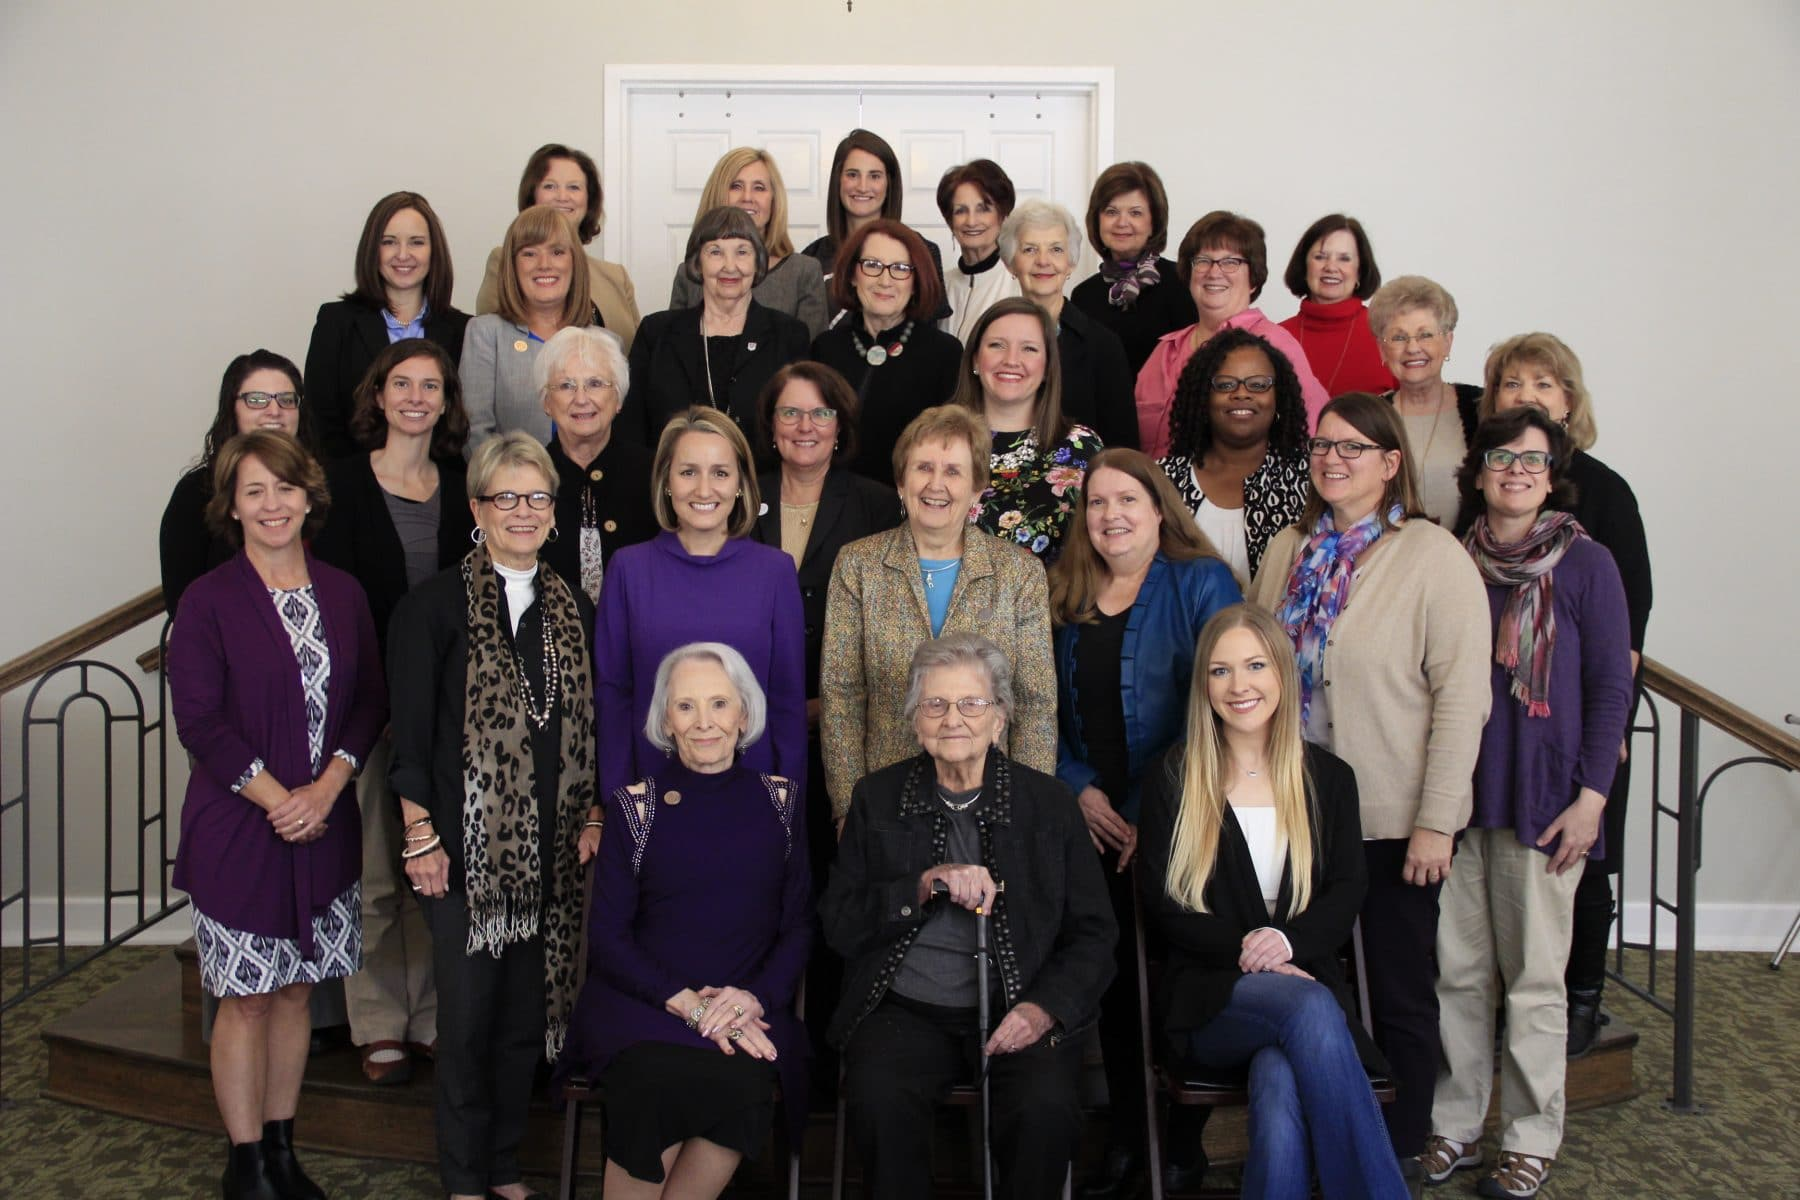 Members of the Women's Giving Circle with 2017-18 grantees.